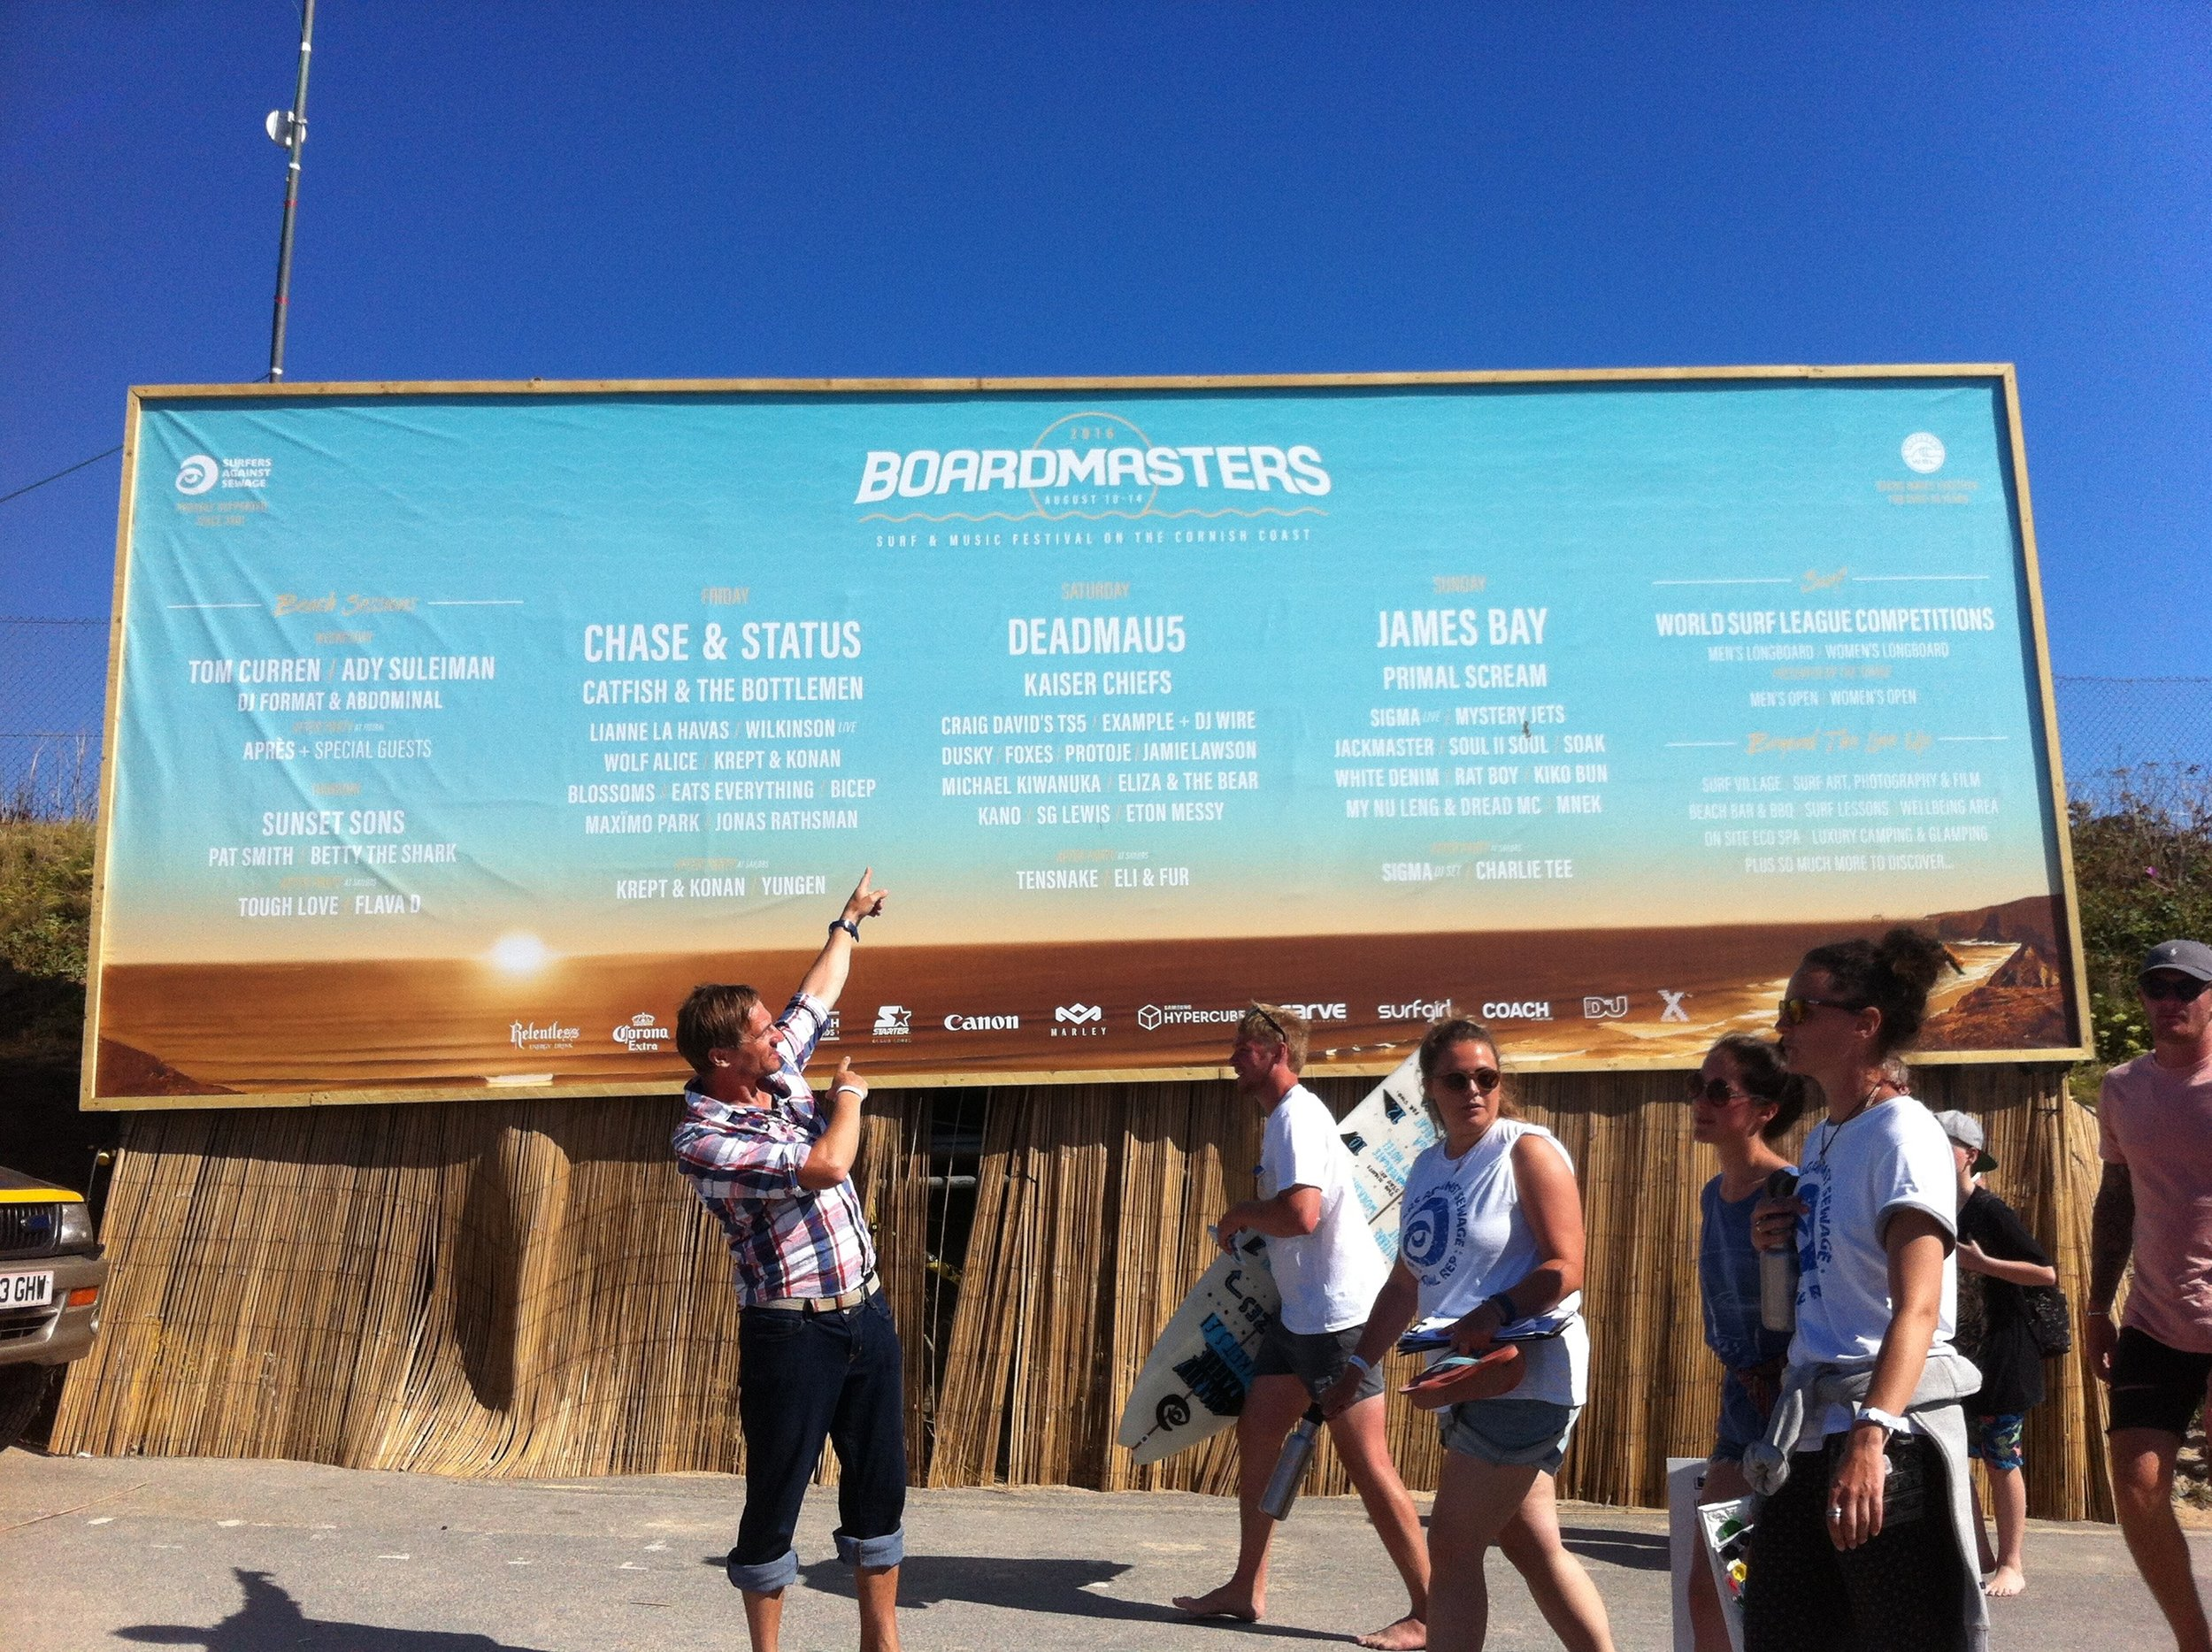 www.boardmasters.com.   I could not believe my ears when I found out I would be performing at the 2016 Boardmasters Surf and Music Festival.  What an event, what a brilliant stage crew, the weather was fantastic and I even scored a few waves.  I hope one day to be back to play again.  Cheers cornwall and all the surf community.